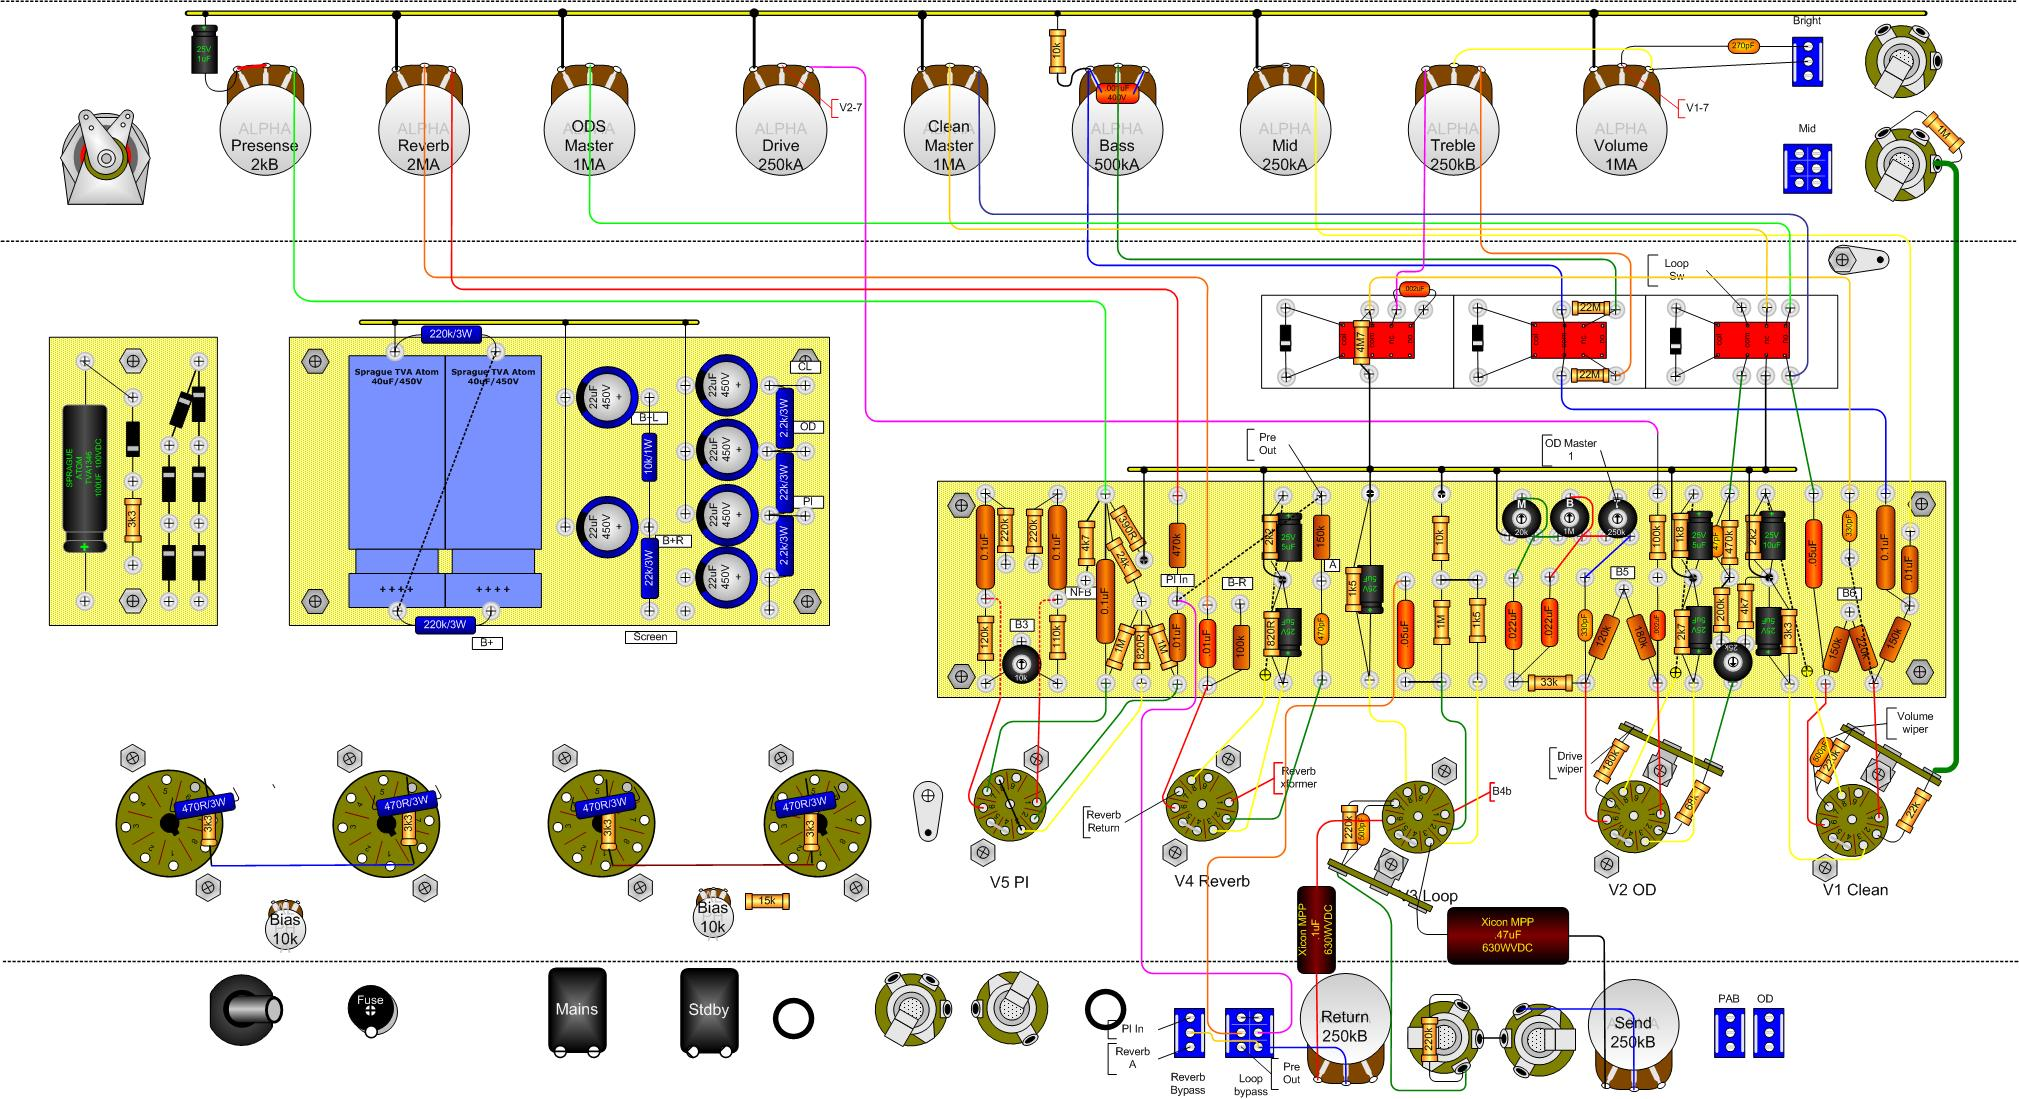 dumble HRM layout on amp layout, chassis dimensions, parts list, input jacks, circuit board, deluxe schematic, amp head, cabinet plans, tube chart, amp bias, cabinet build,